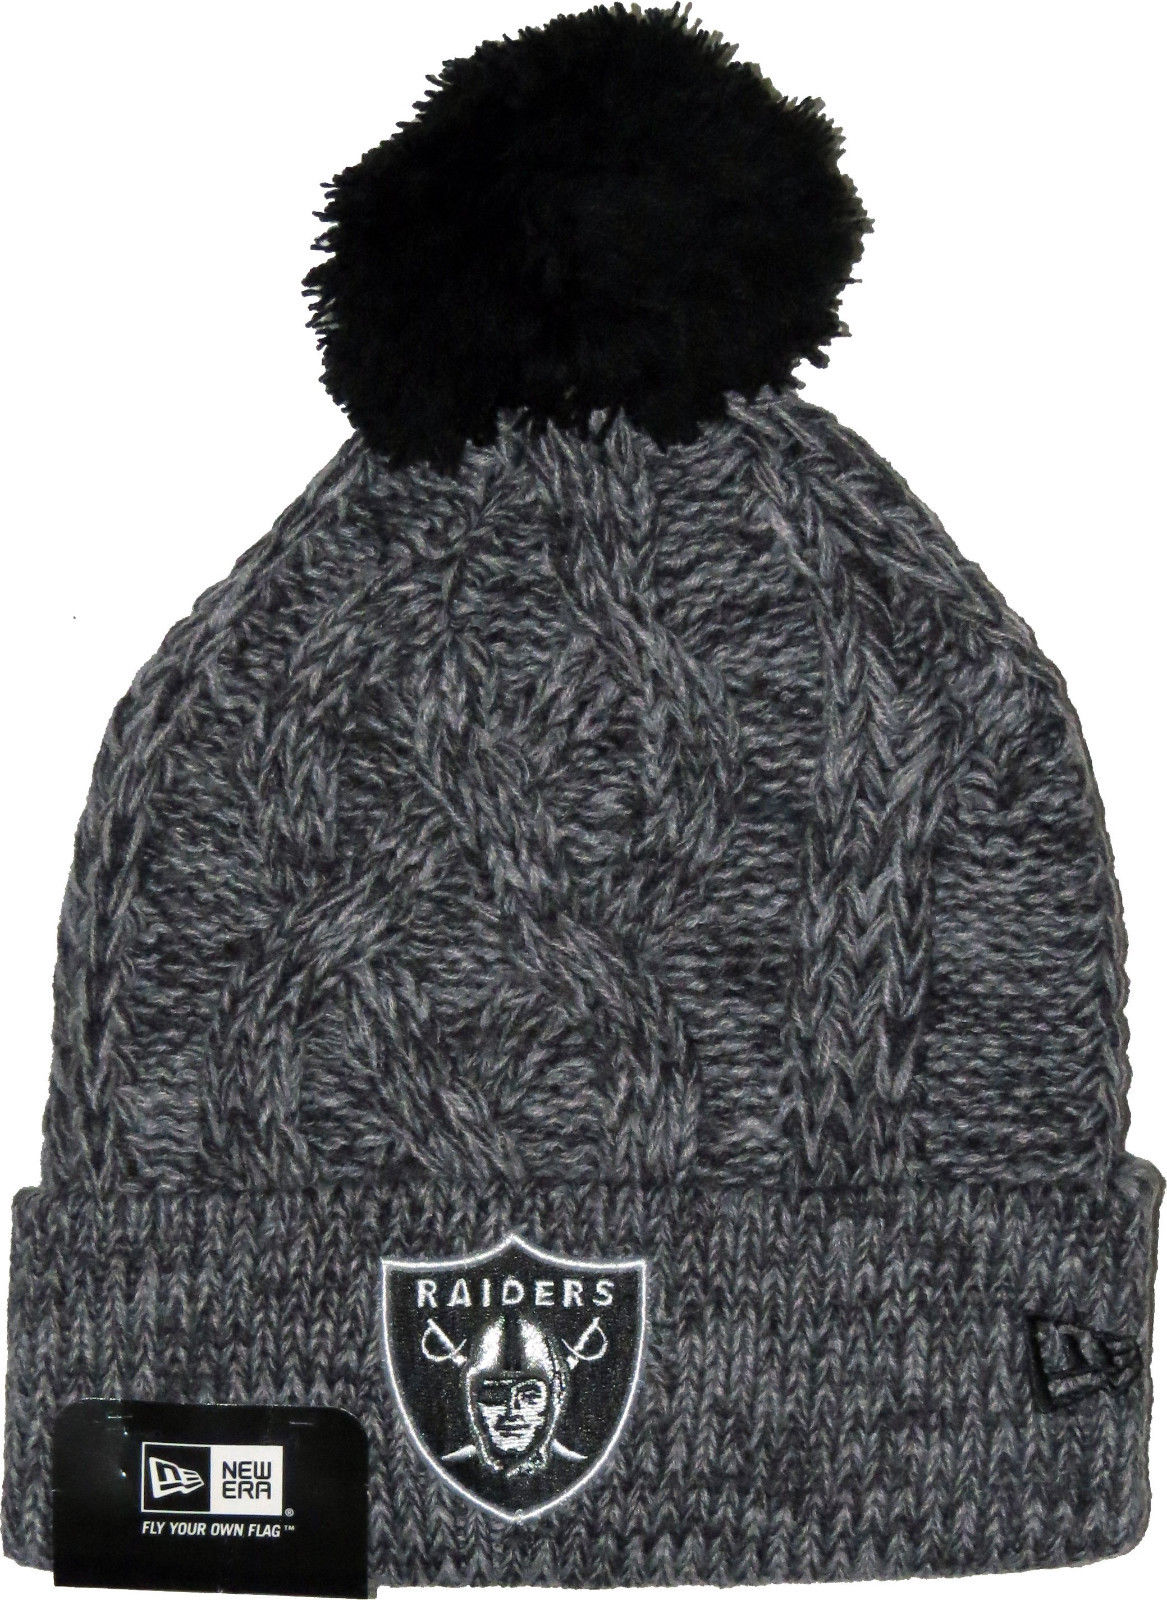 low priced 67508 560d8 A warm knitted bobble hat perfect for those cold days. Features embroidered  crest in club colours, this is a knitted design which would be a great hat  for ...